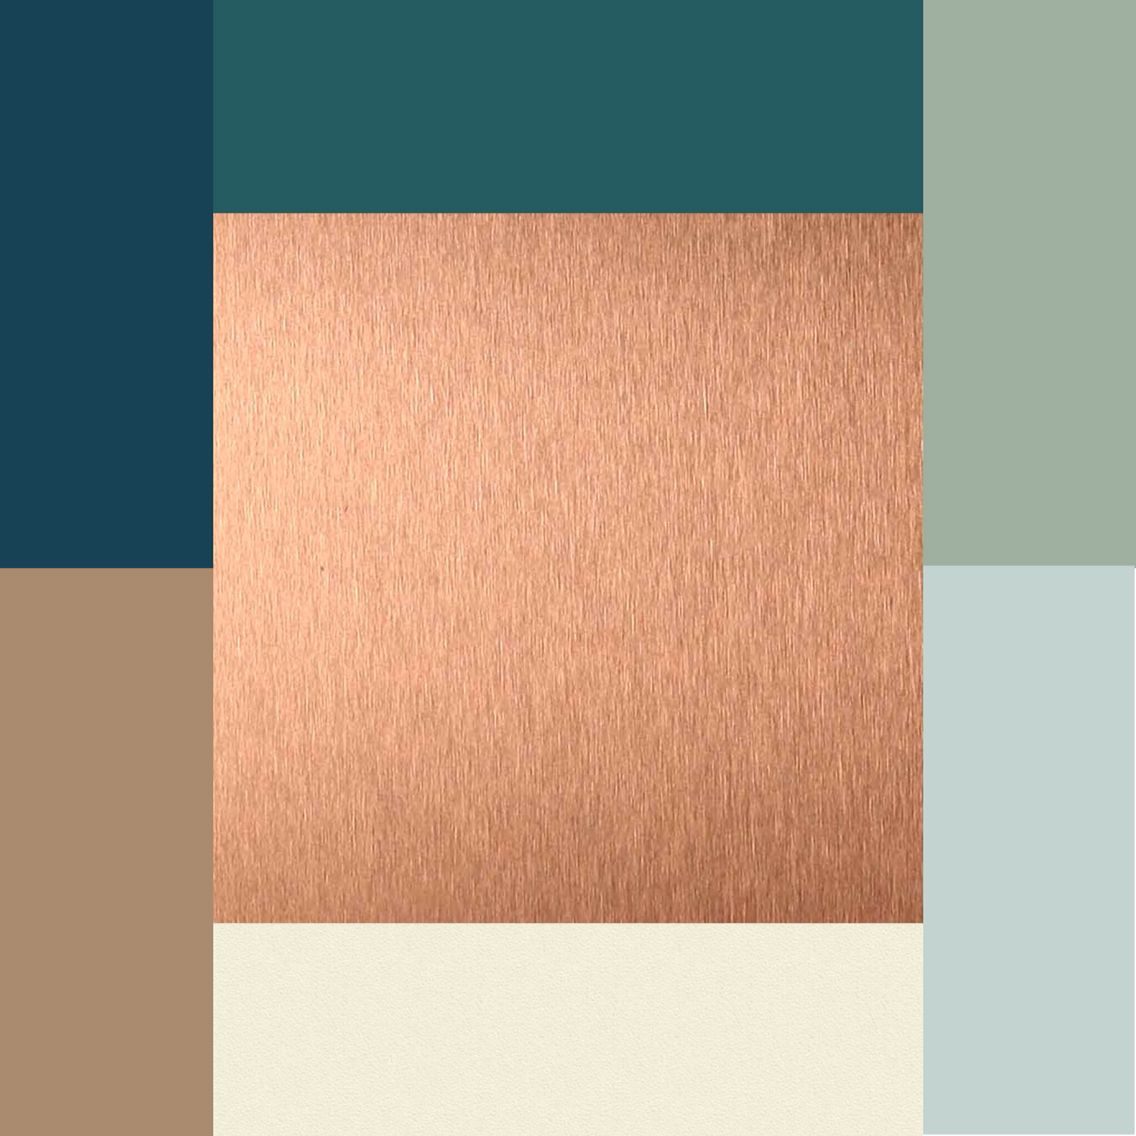 Colors Copper Ivory Brownish Tan Silvery Blue Moss Green Dark Teal And Navy